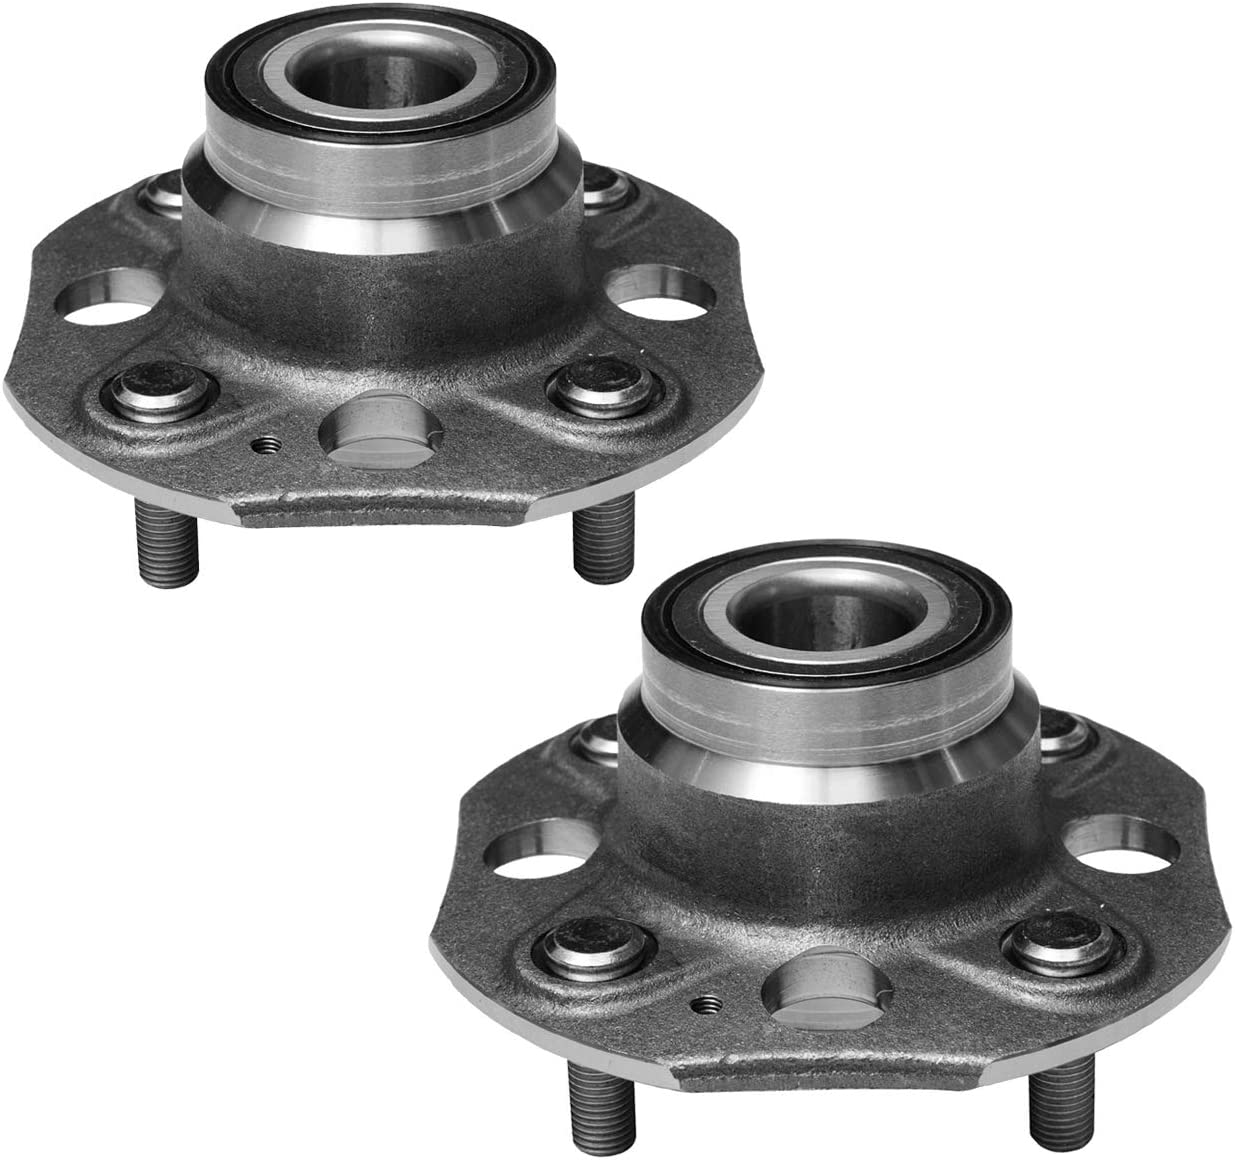 4 Lug Non-ABS TUCAREST 512176 x2 L4 2.3L;Rear Break:Drum Only Pair Rear Wheel Bearing and Hub Assembly Compatible With 1998 1999 2000 2001 2002 Honda Accord